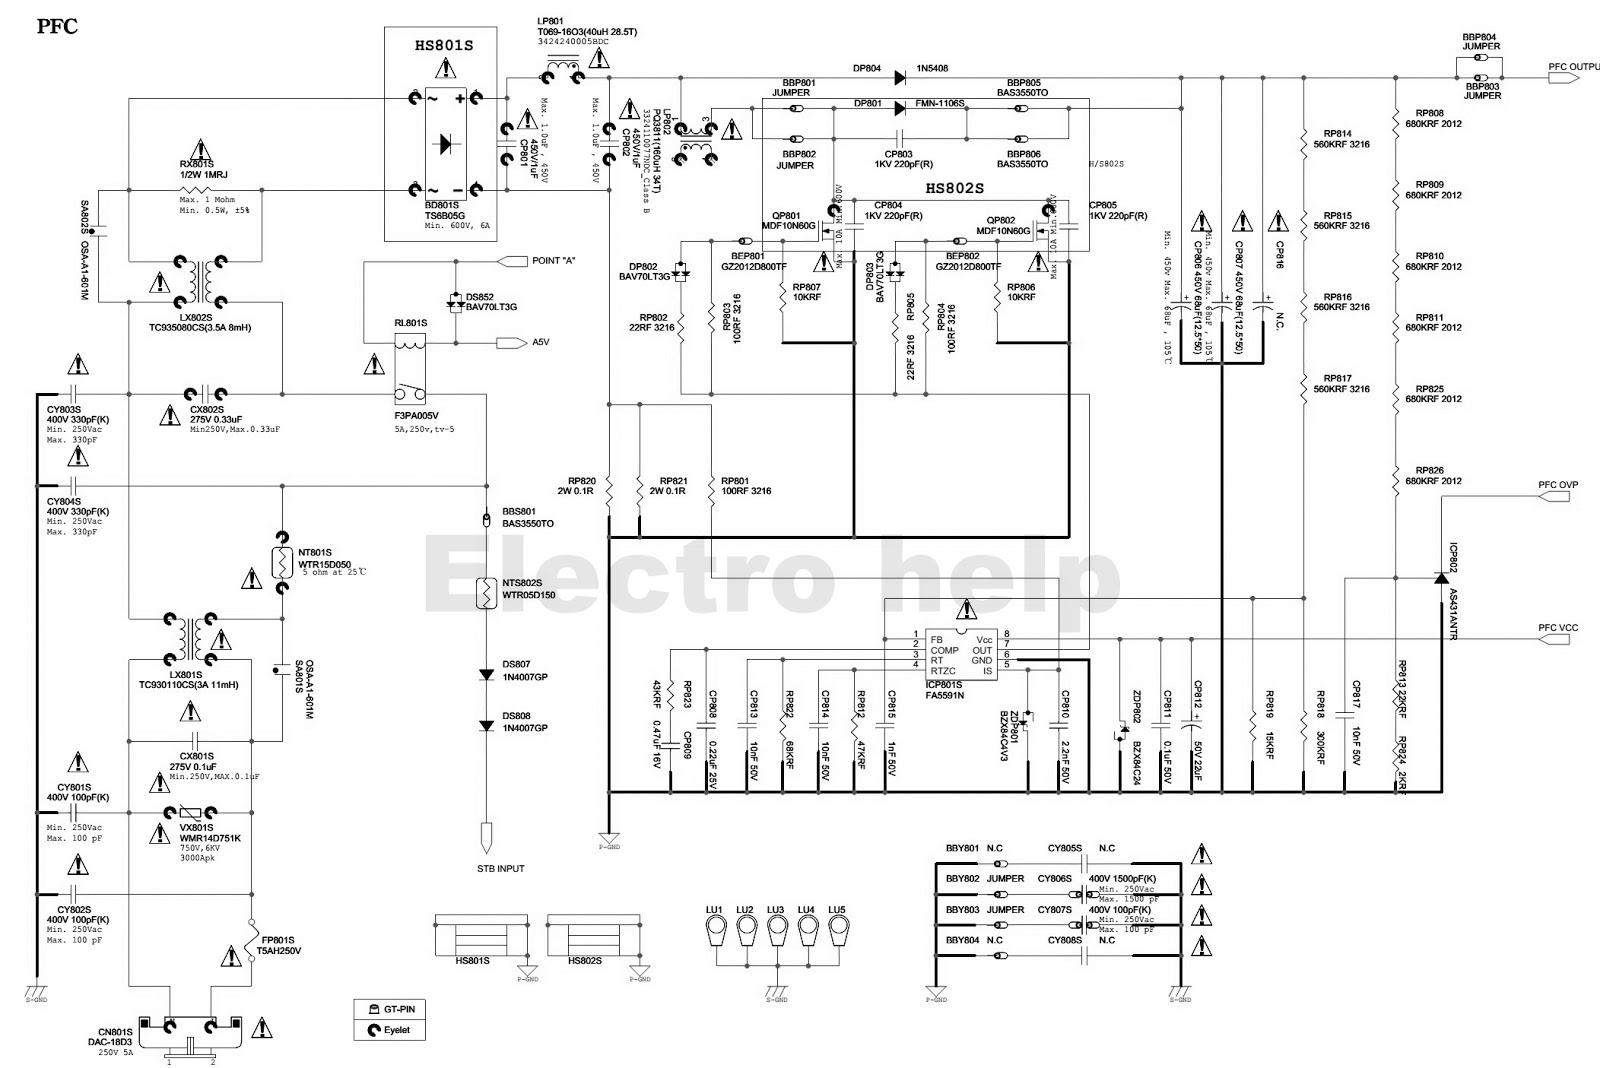 1-PFC Ups Circuit Block Diagram on switching power supply diagram, ups installation, vmware view diagram, ignition switch diagram, ups computer, relay diagram, proxy diagram, slc 500 power supply wiring diagram, ballast diagram, ups circuit design, as is to be diagram, wind energy diagram, schematic diagram,